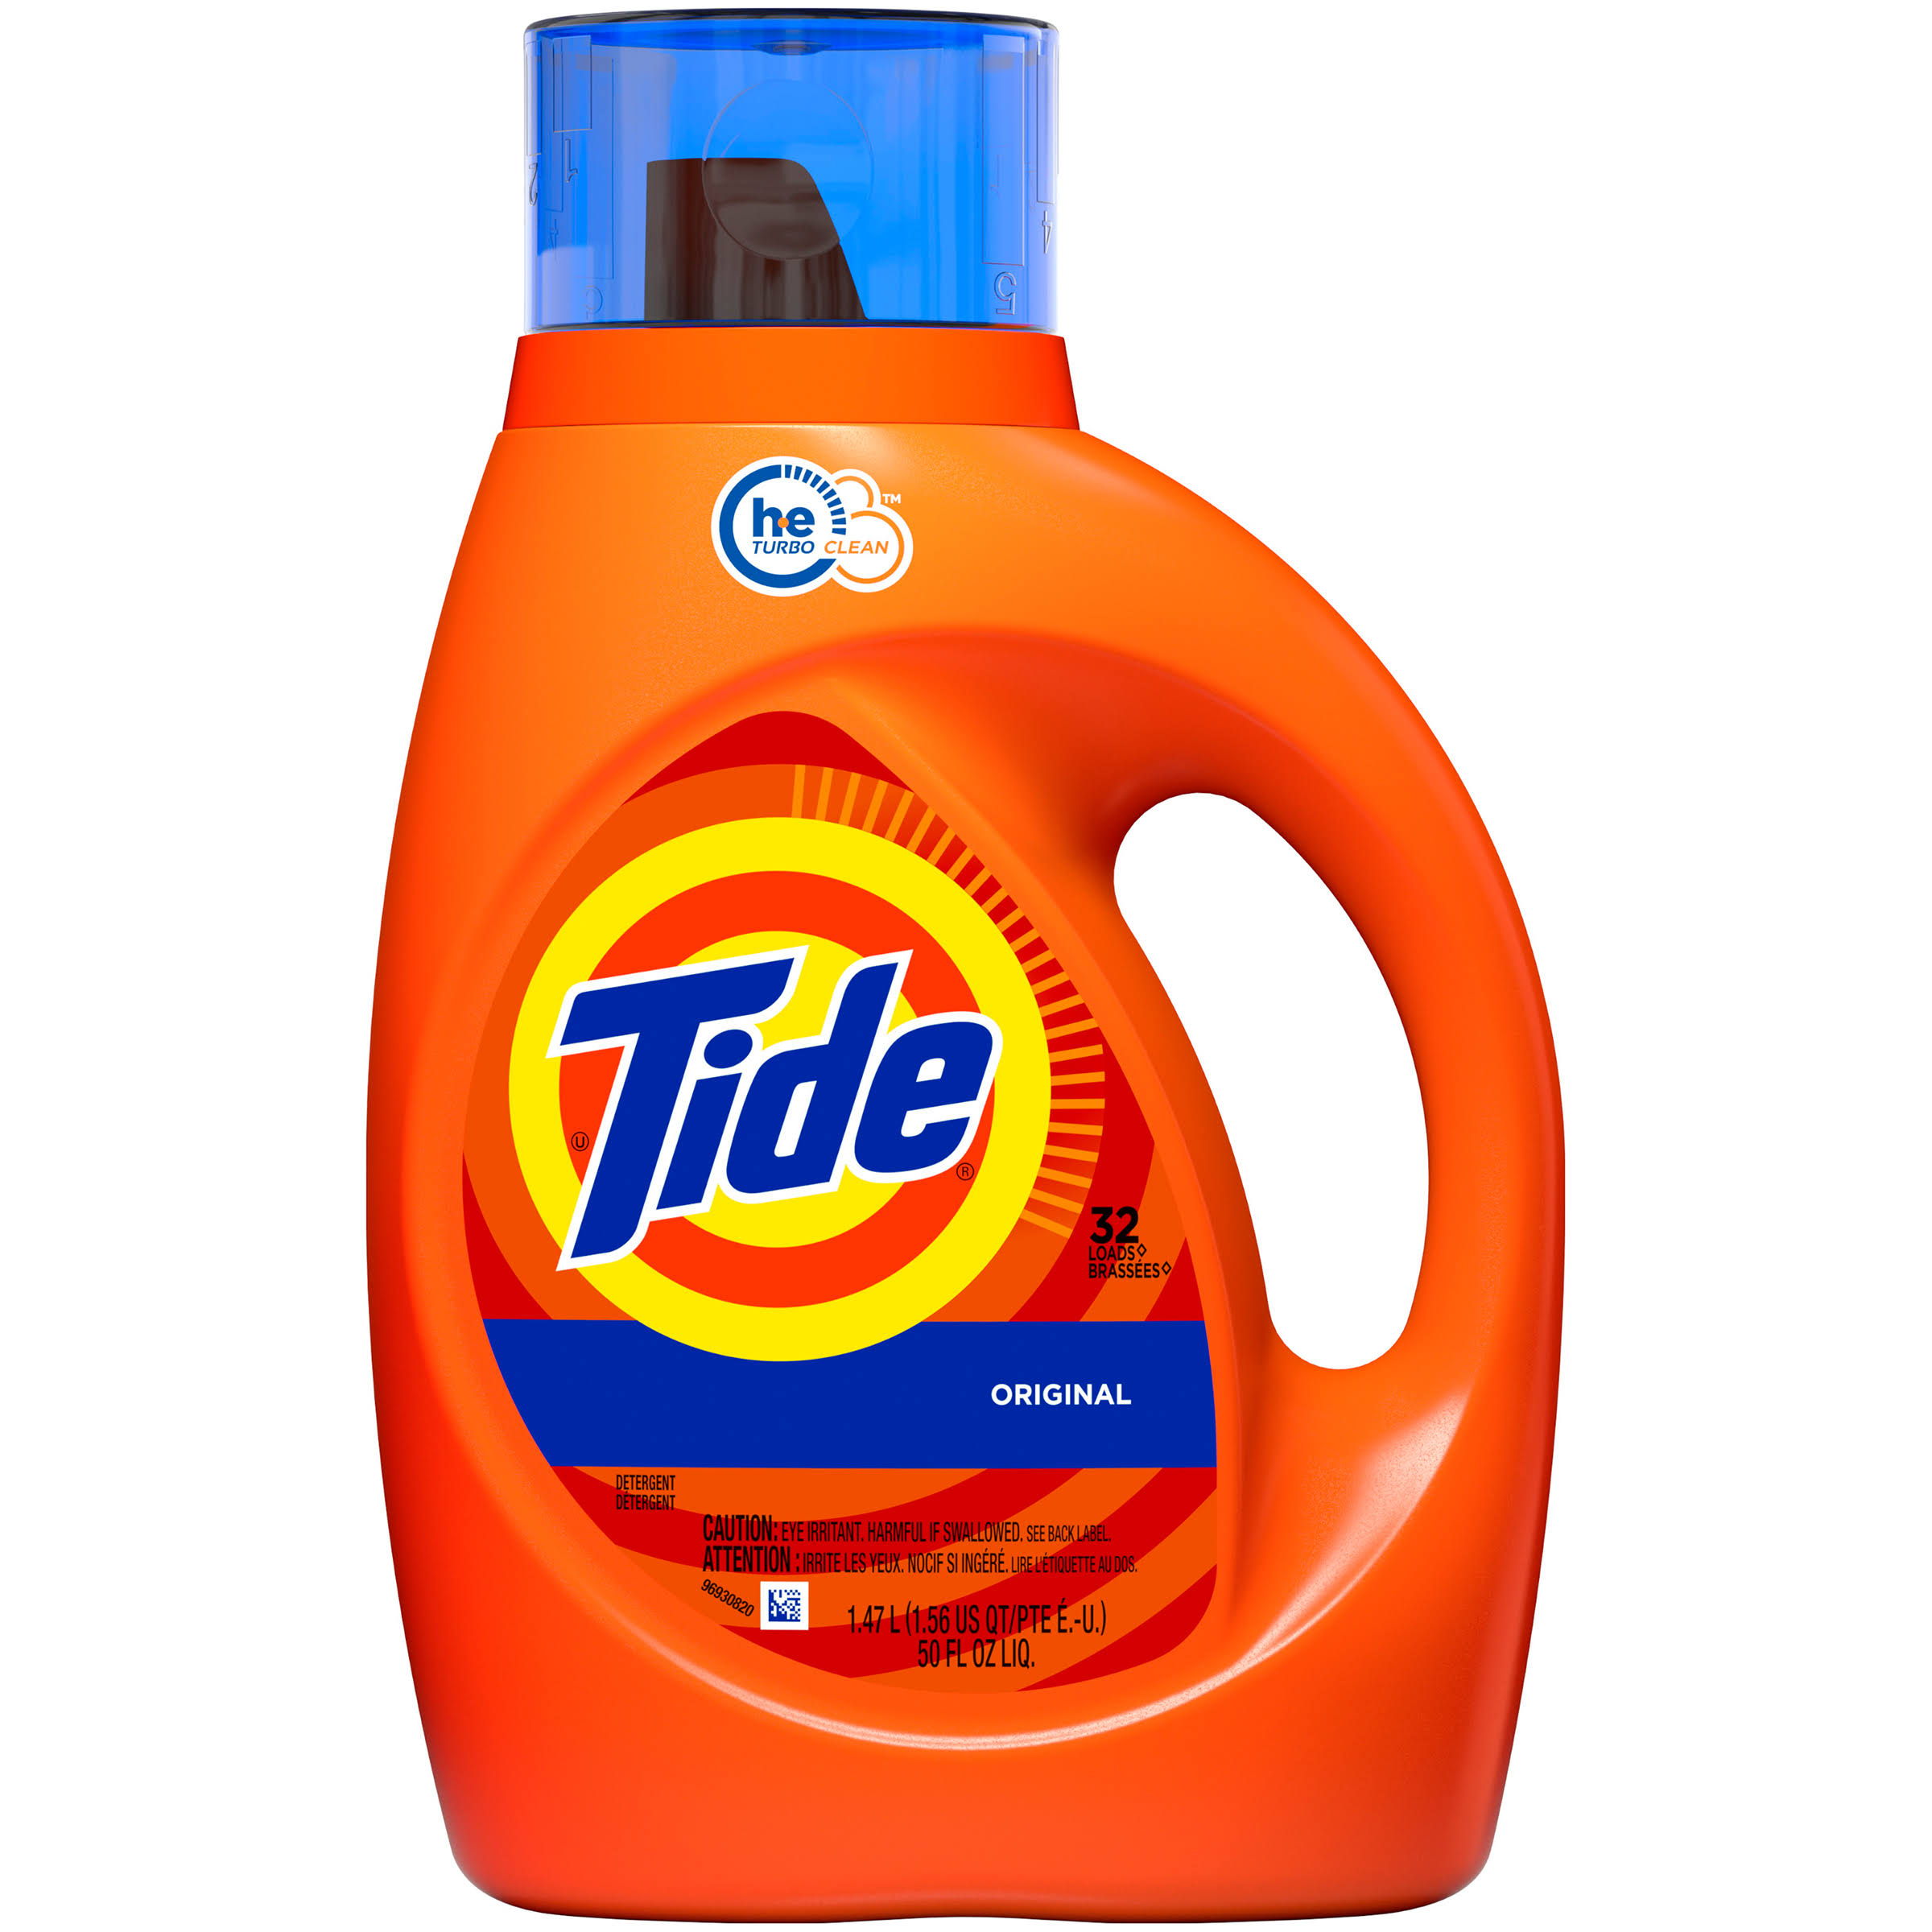 Tide HE Liquid Laundry Detergent - 50oz, Original Scent, 32 Loads